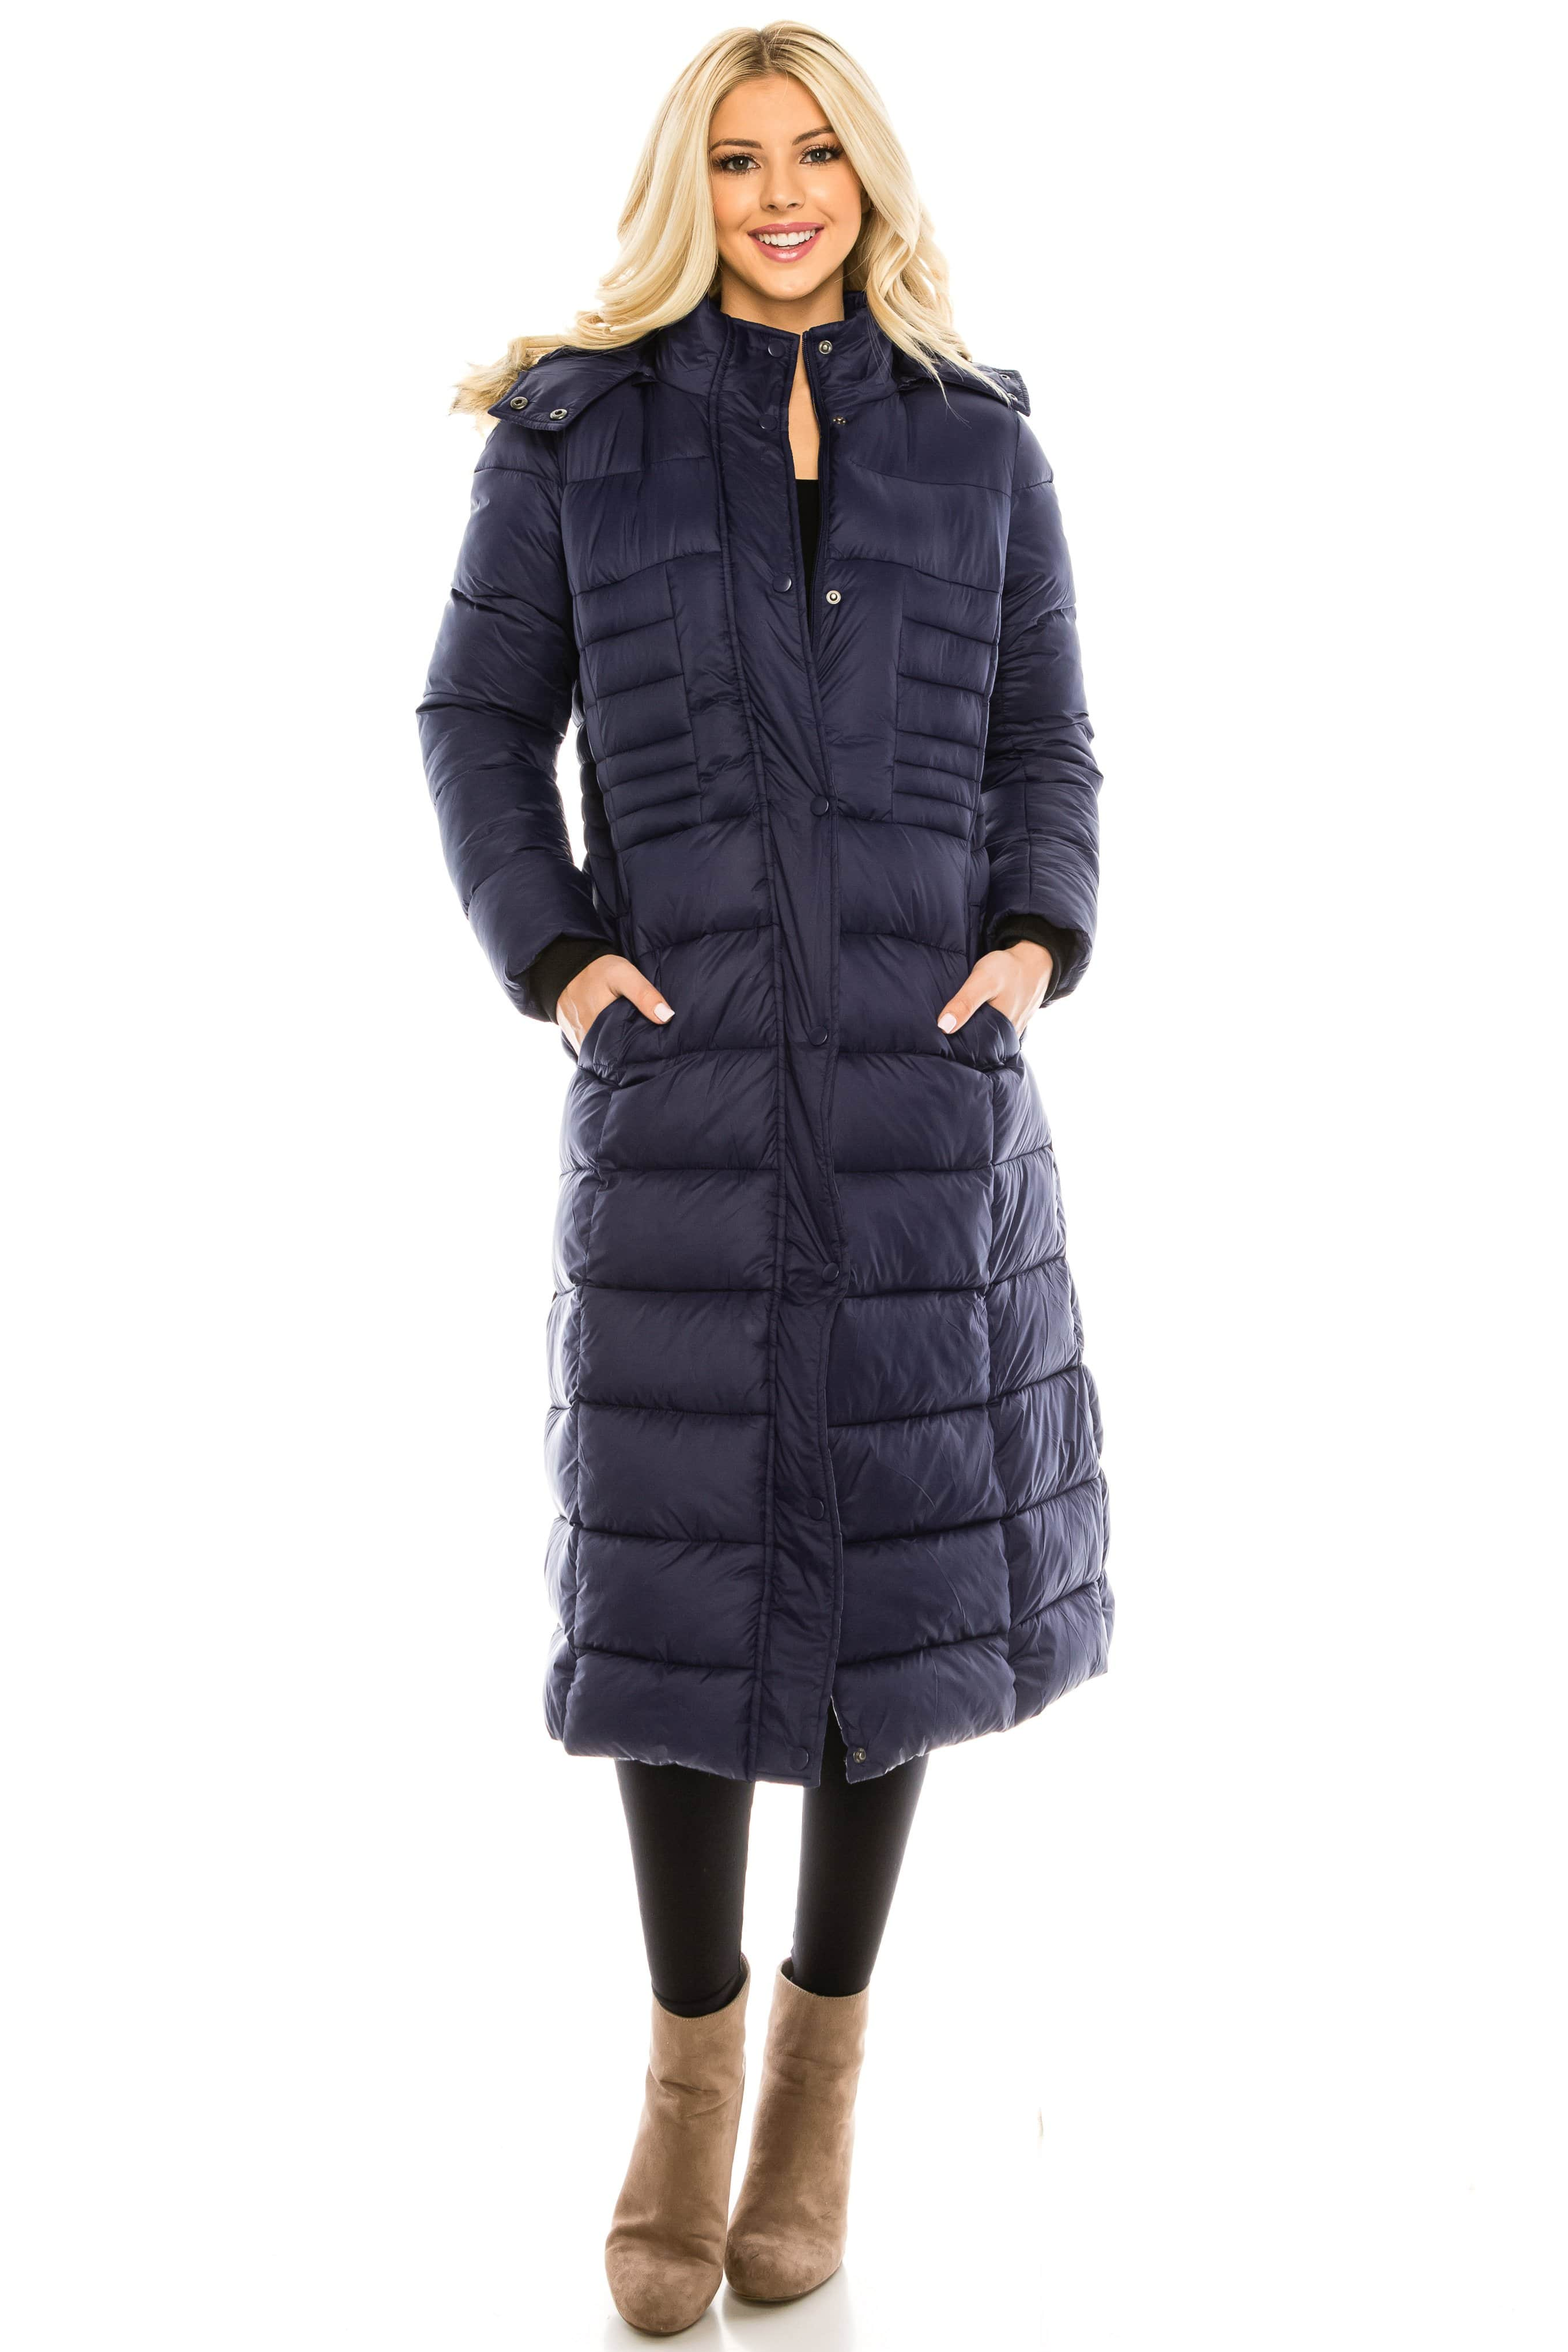 DAILYHAUTE Women's coats NAVY / S Haute Edition Women's Maxi Length Quilted Puffer with Fur Lined Hood